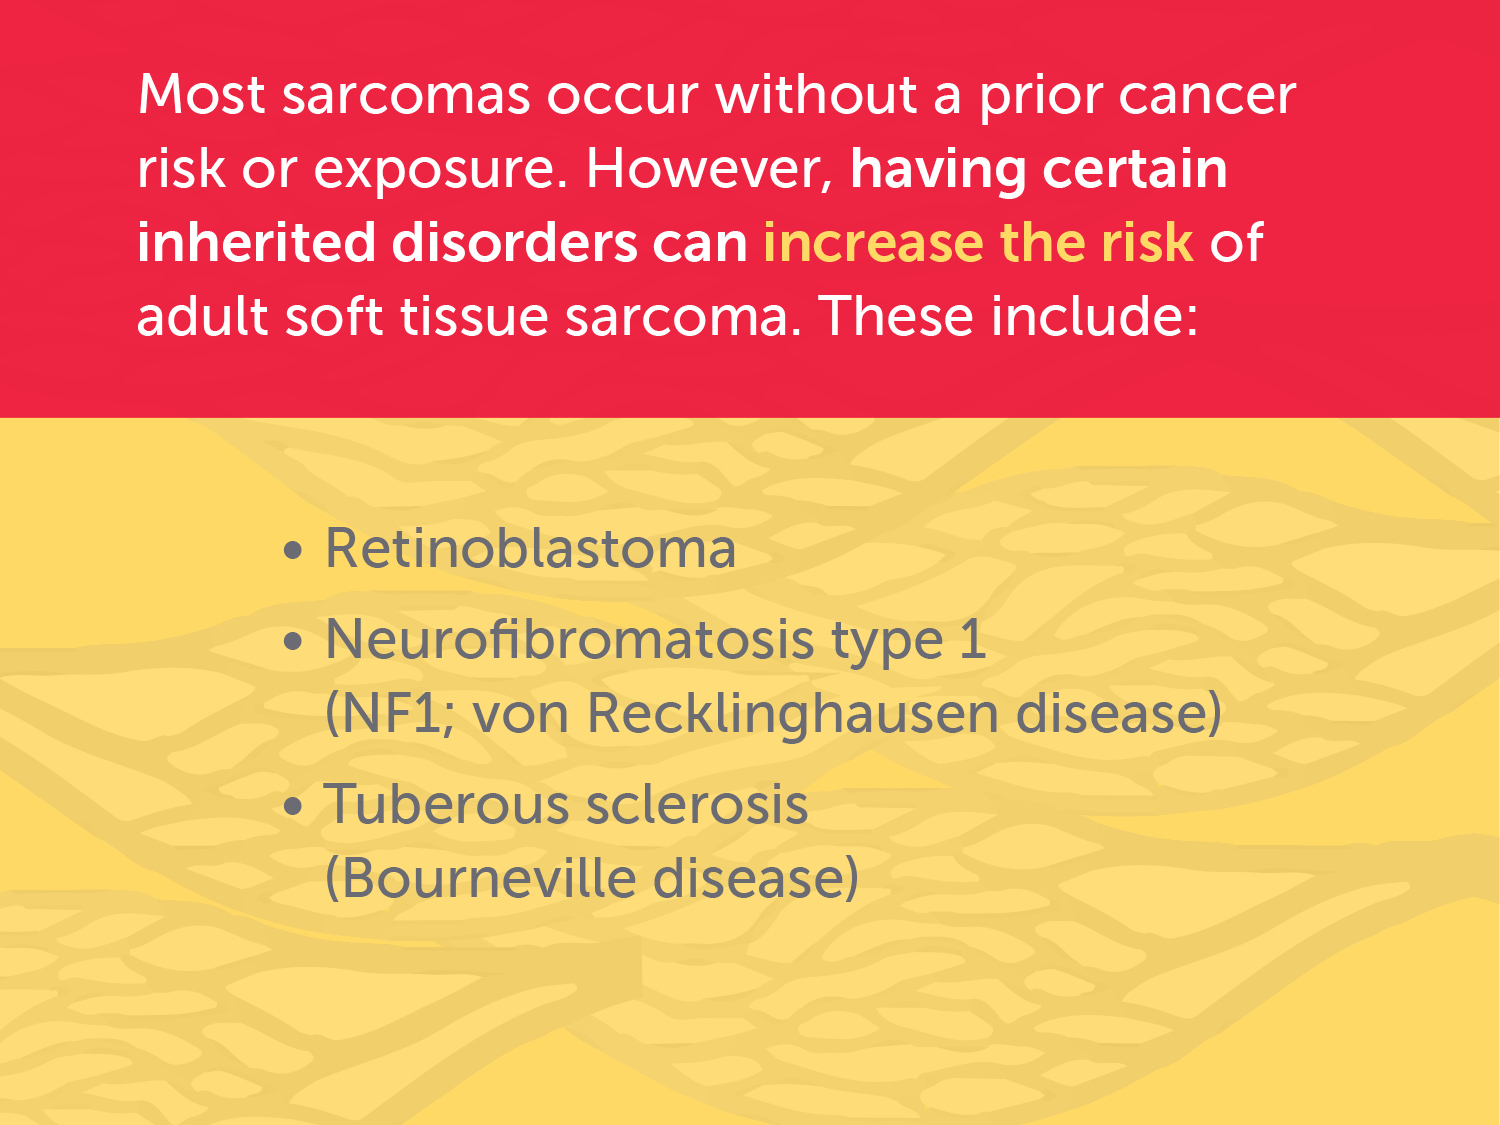 Learn more from Dana-Farber's Center for Sarcoma and Bone Oncology